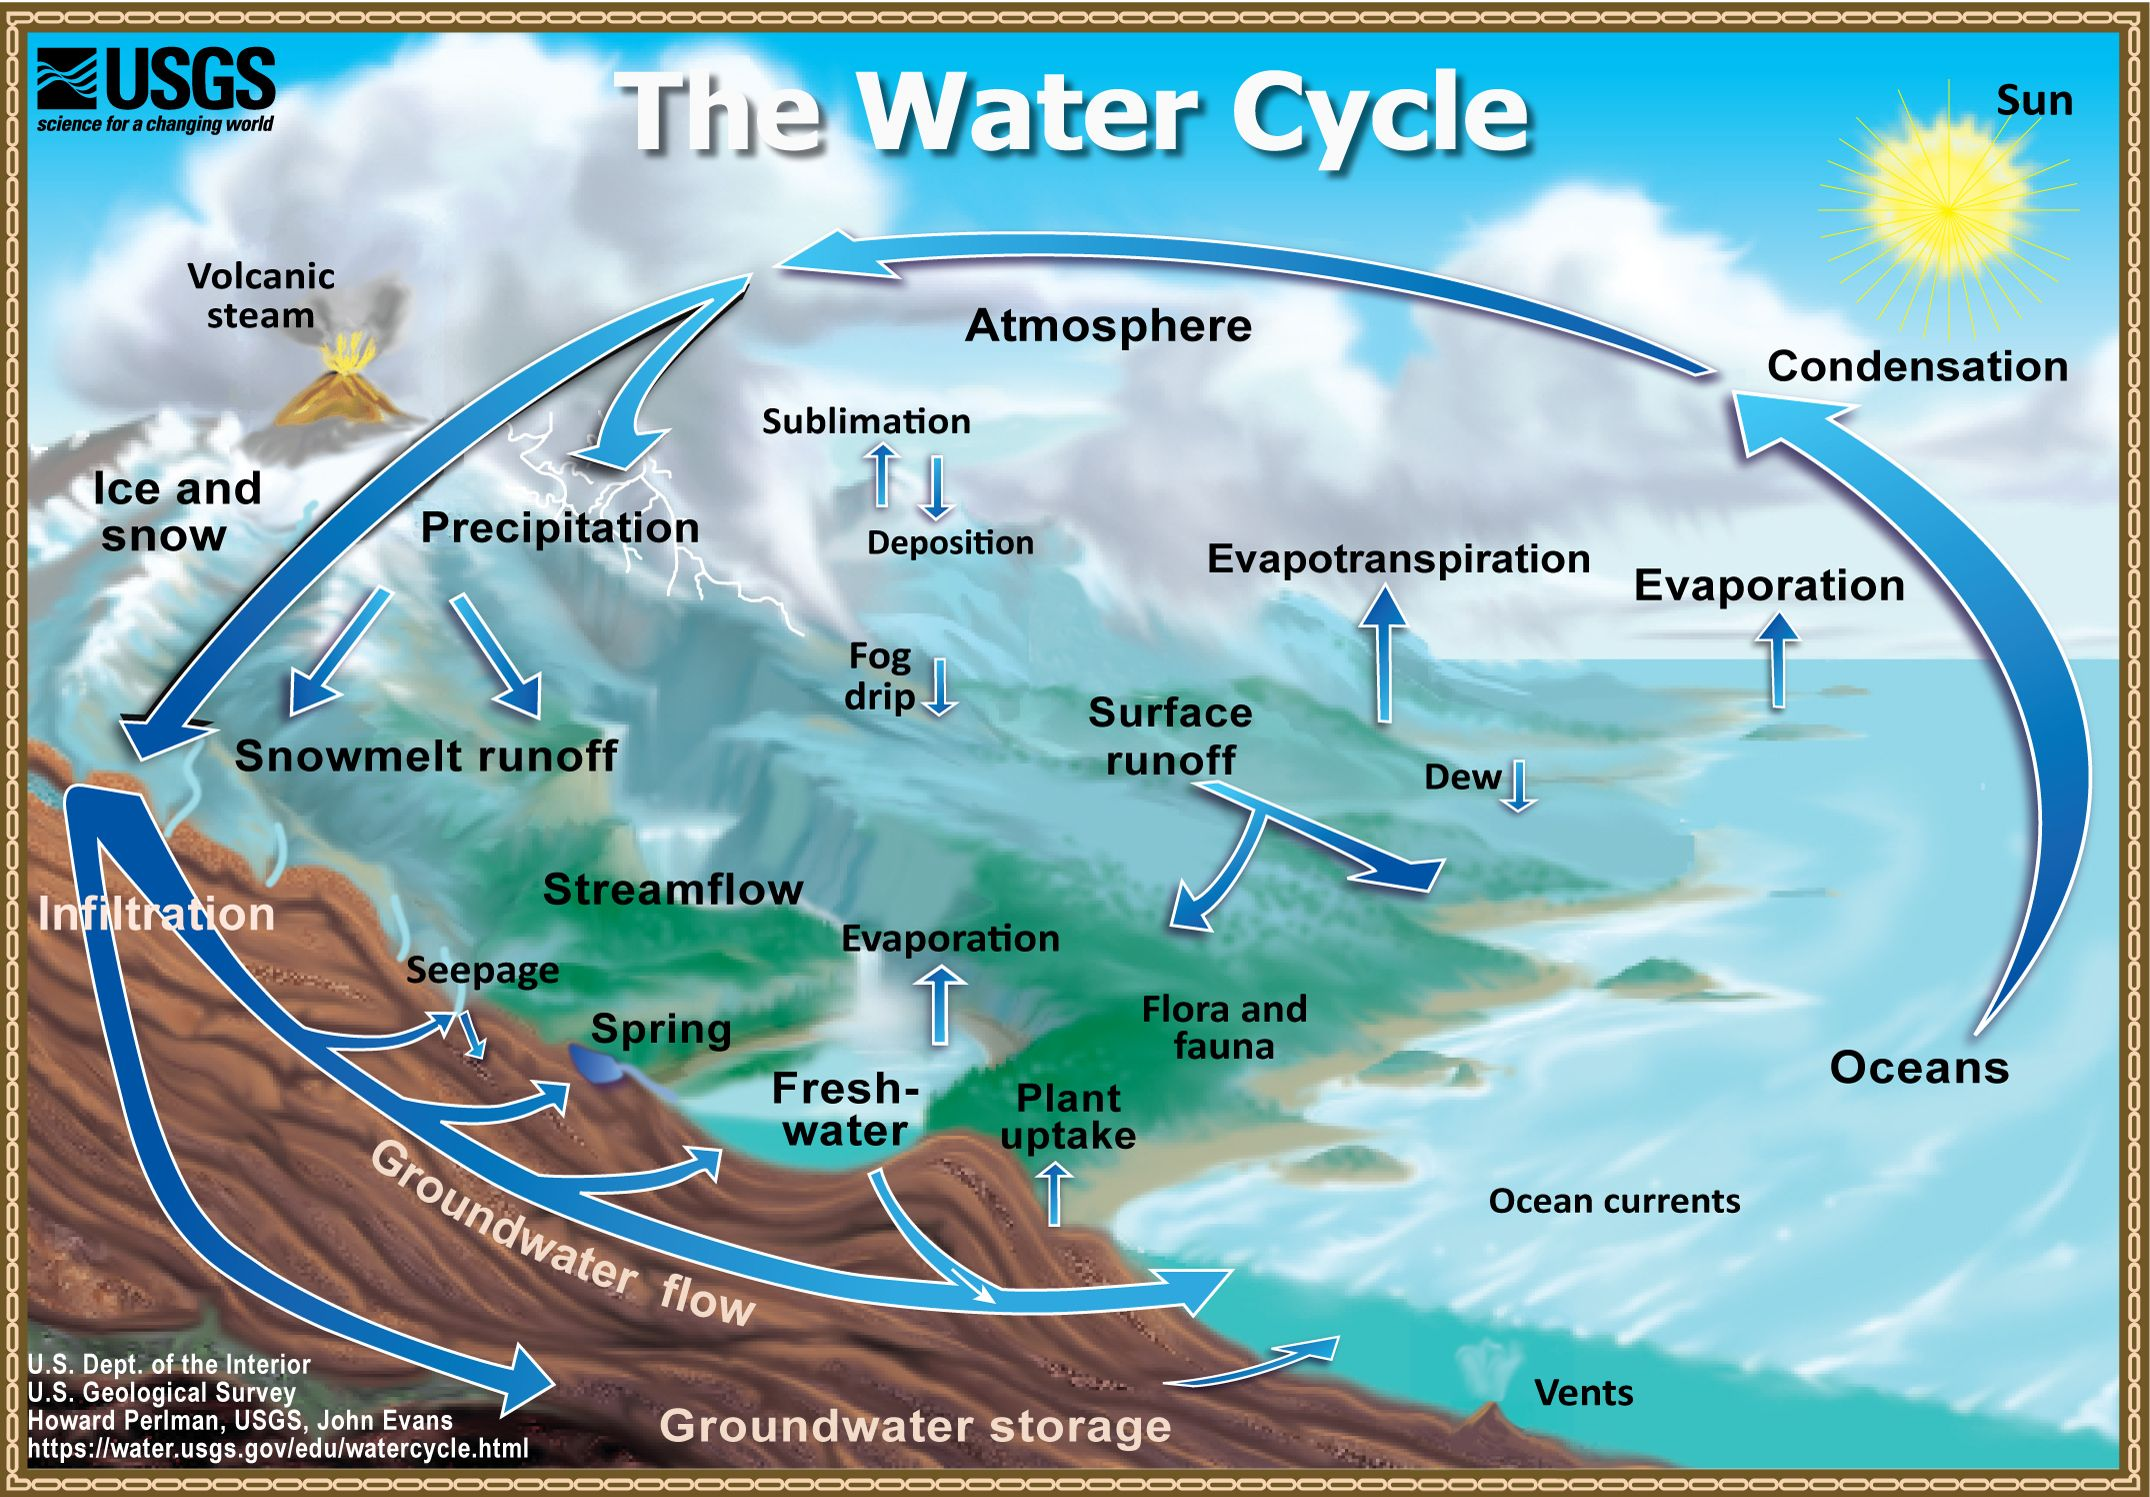 Usgs Water Cycle Image